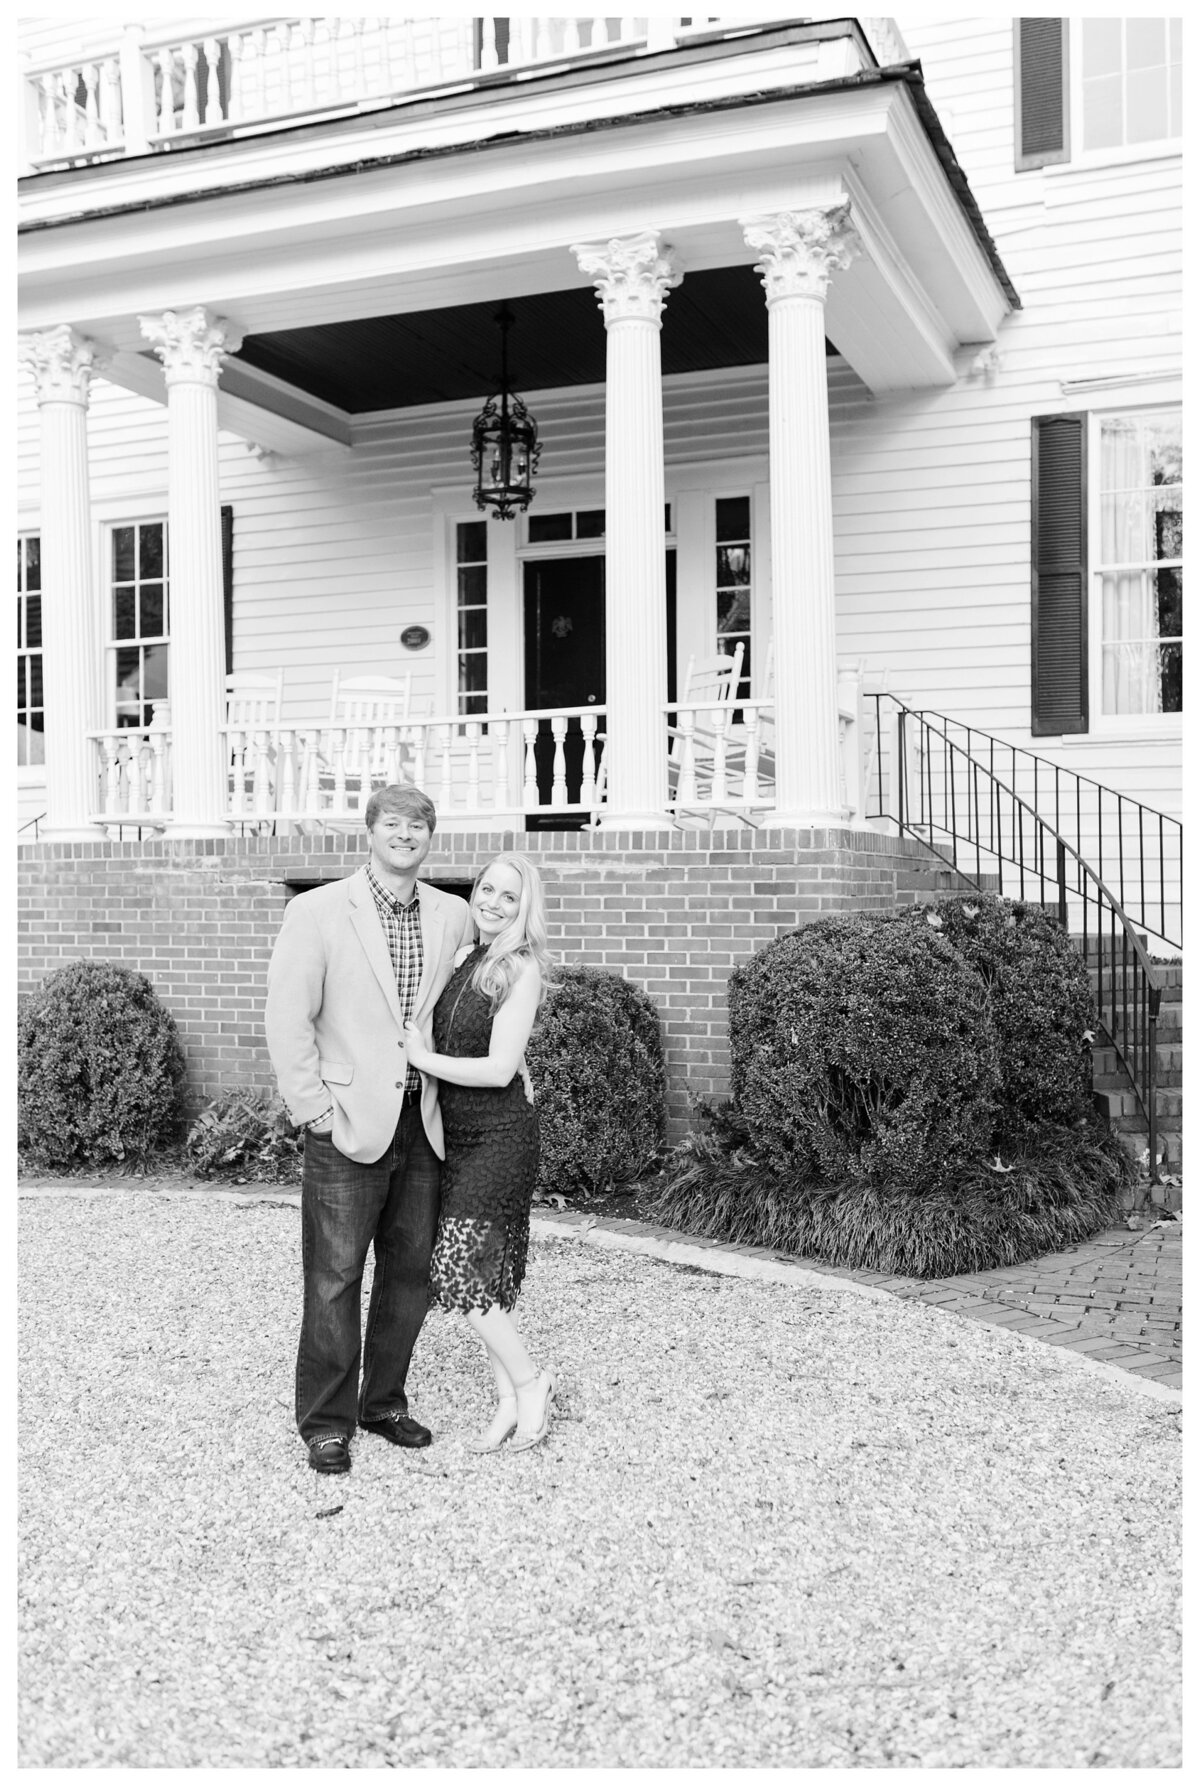 canady-engagements-atlanta-wedding-photographer-35